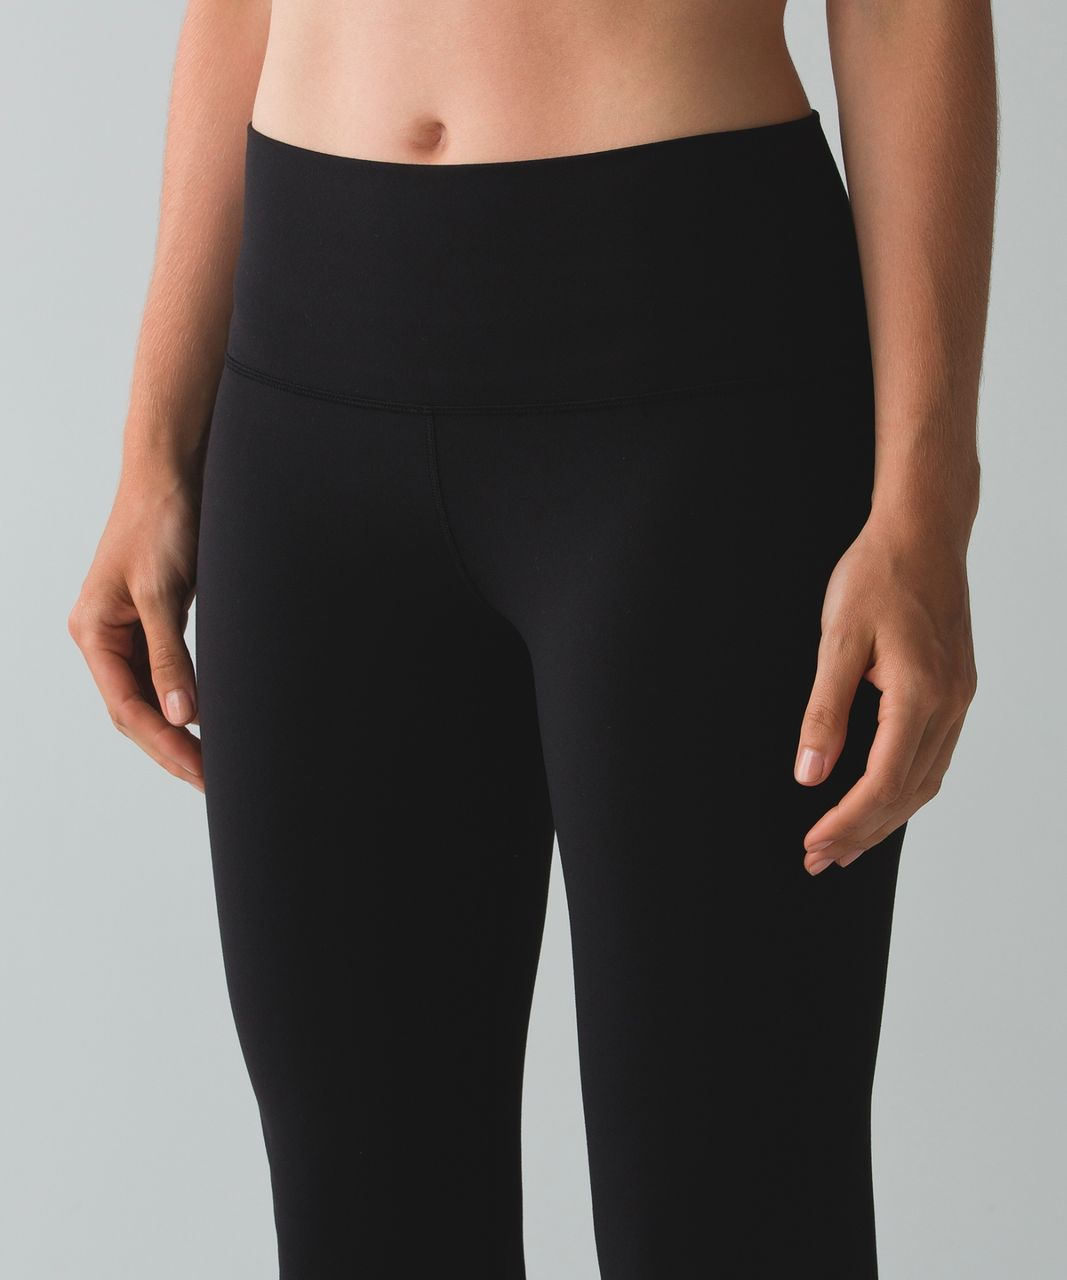 Lululemon Groove Pant III (Tall) *Full-On Luon - Black